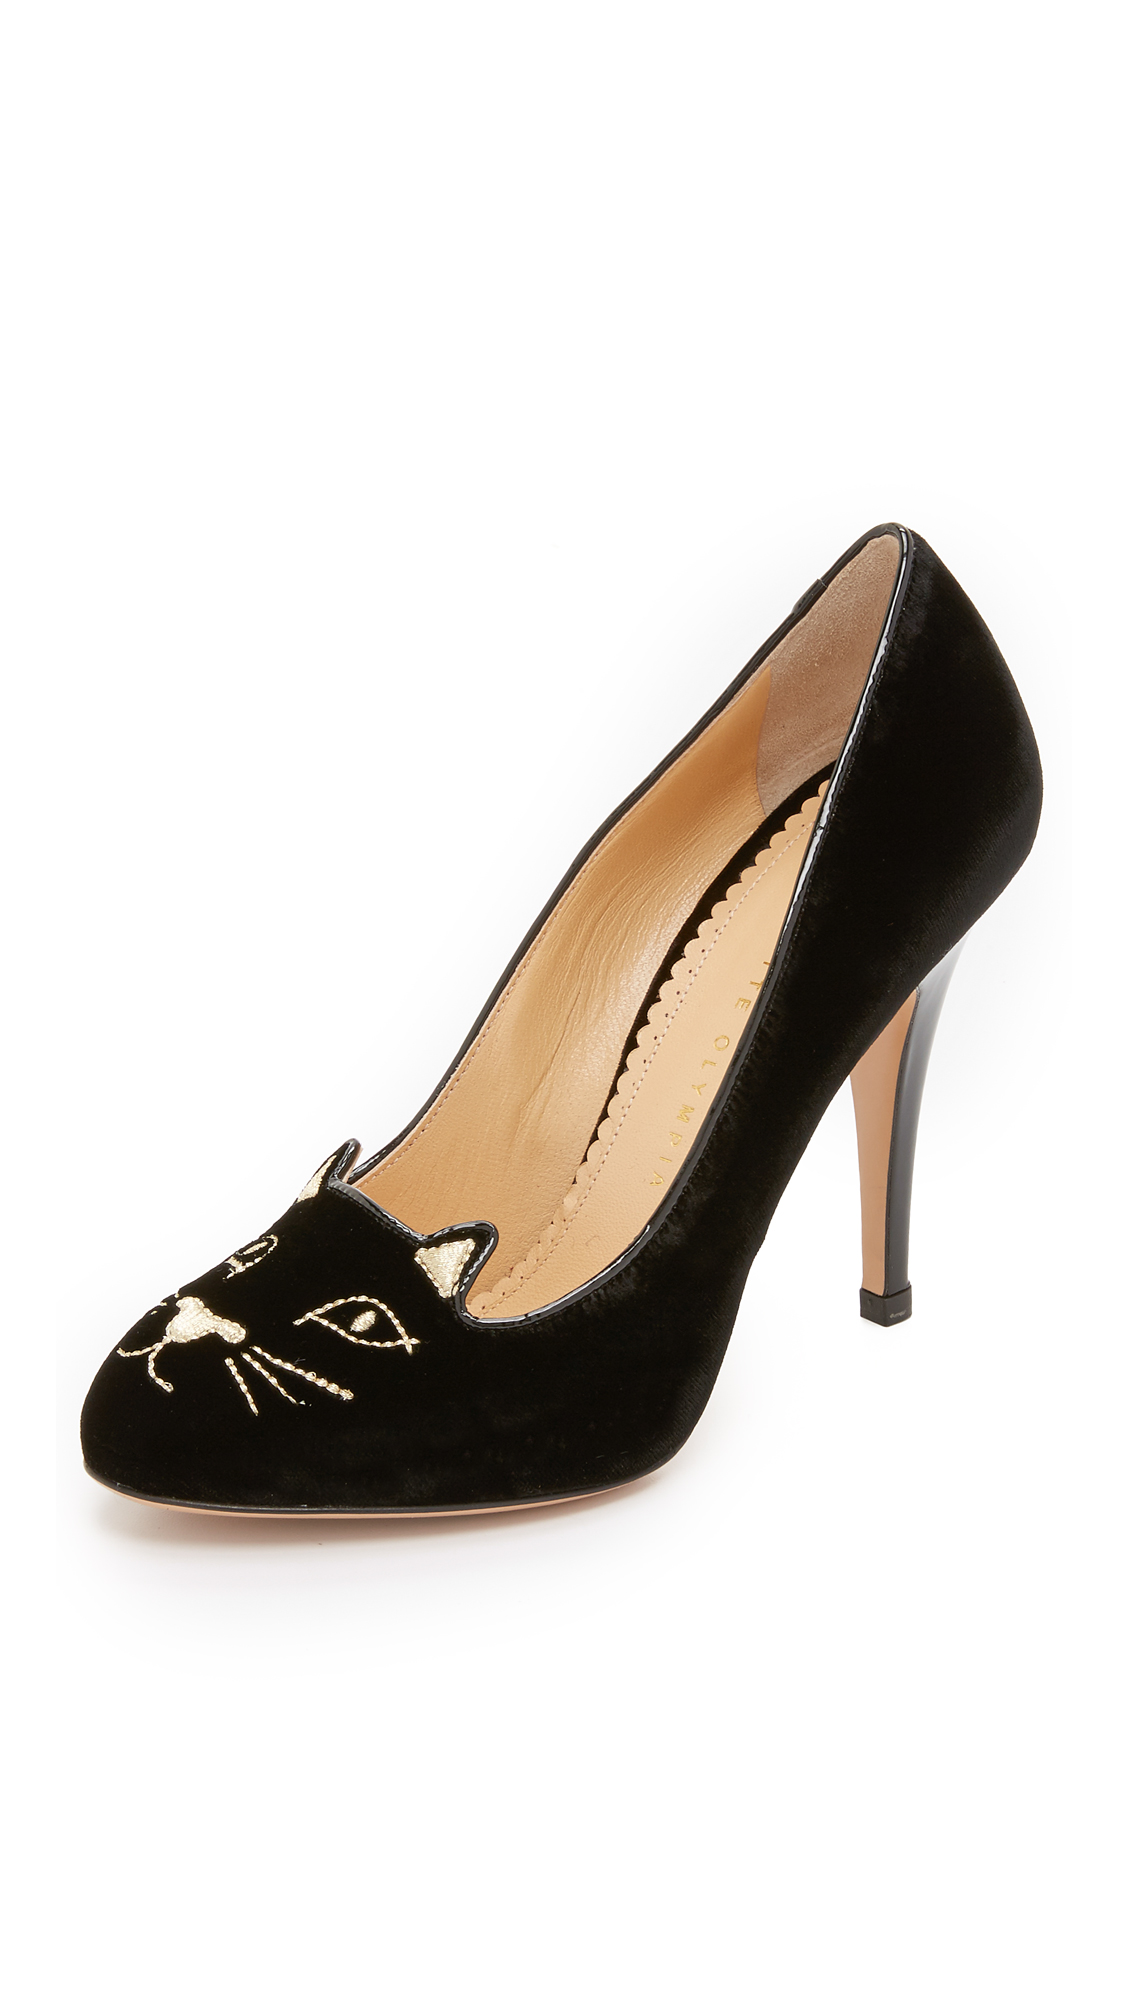 Charlotte Olympia Velvet Kitty Pumps - Black